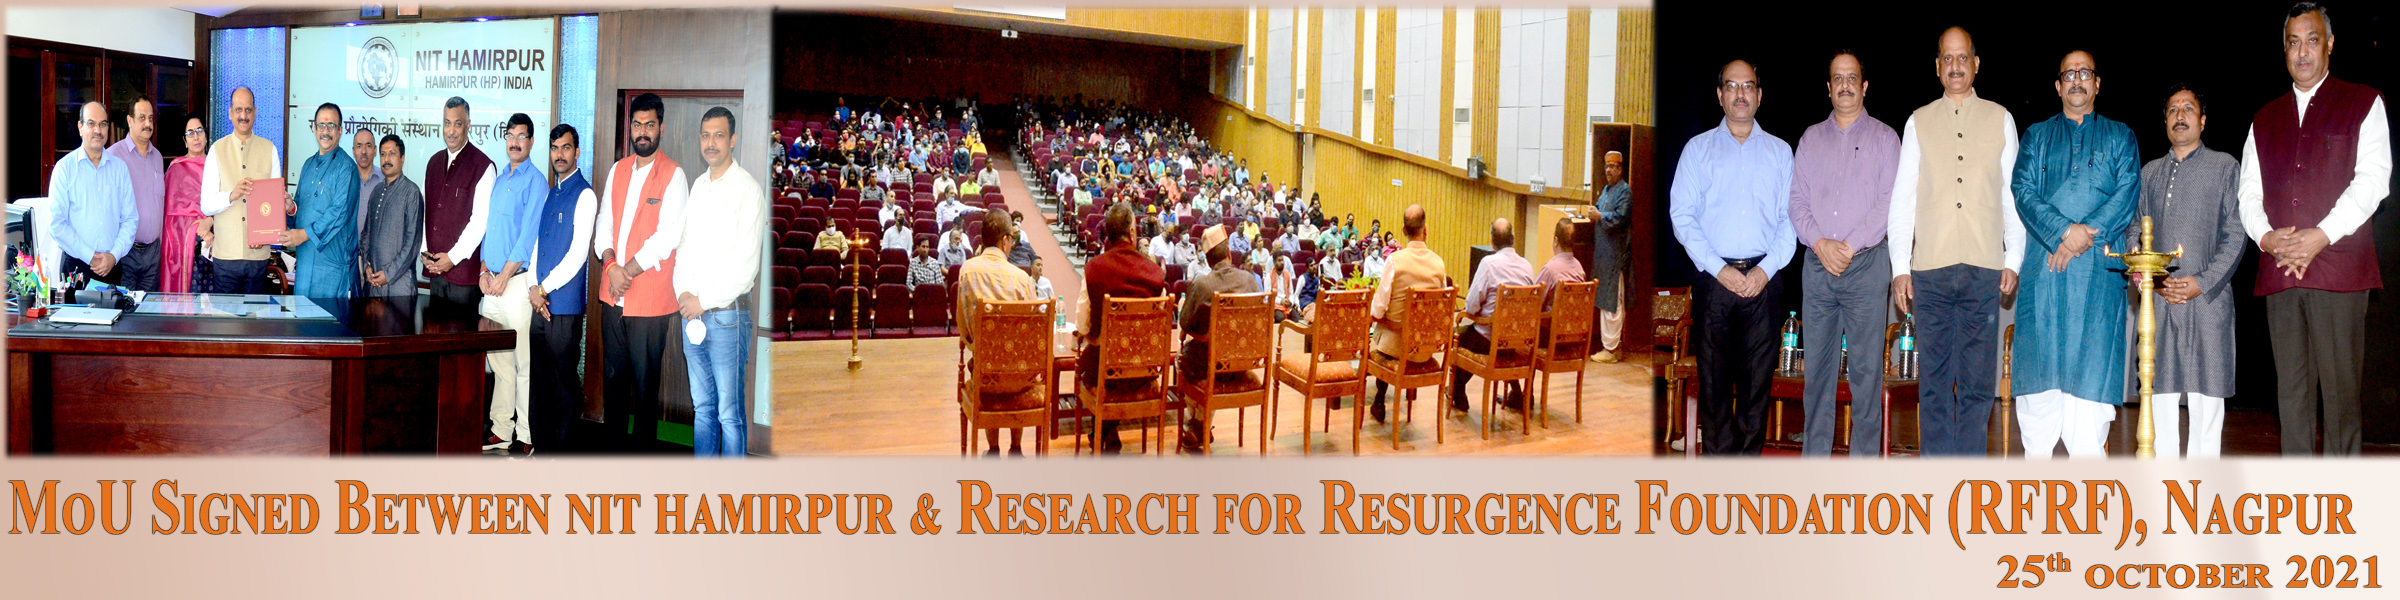 MoU with Research For Resurgence Foundation